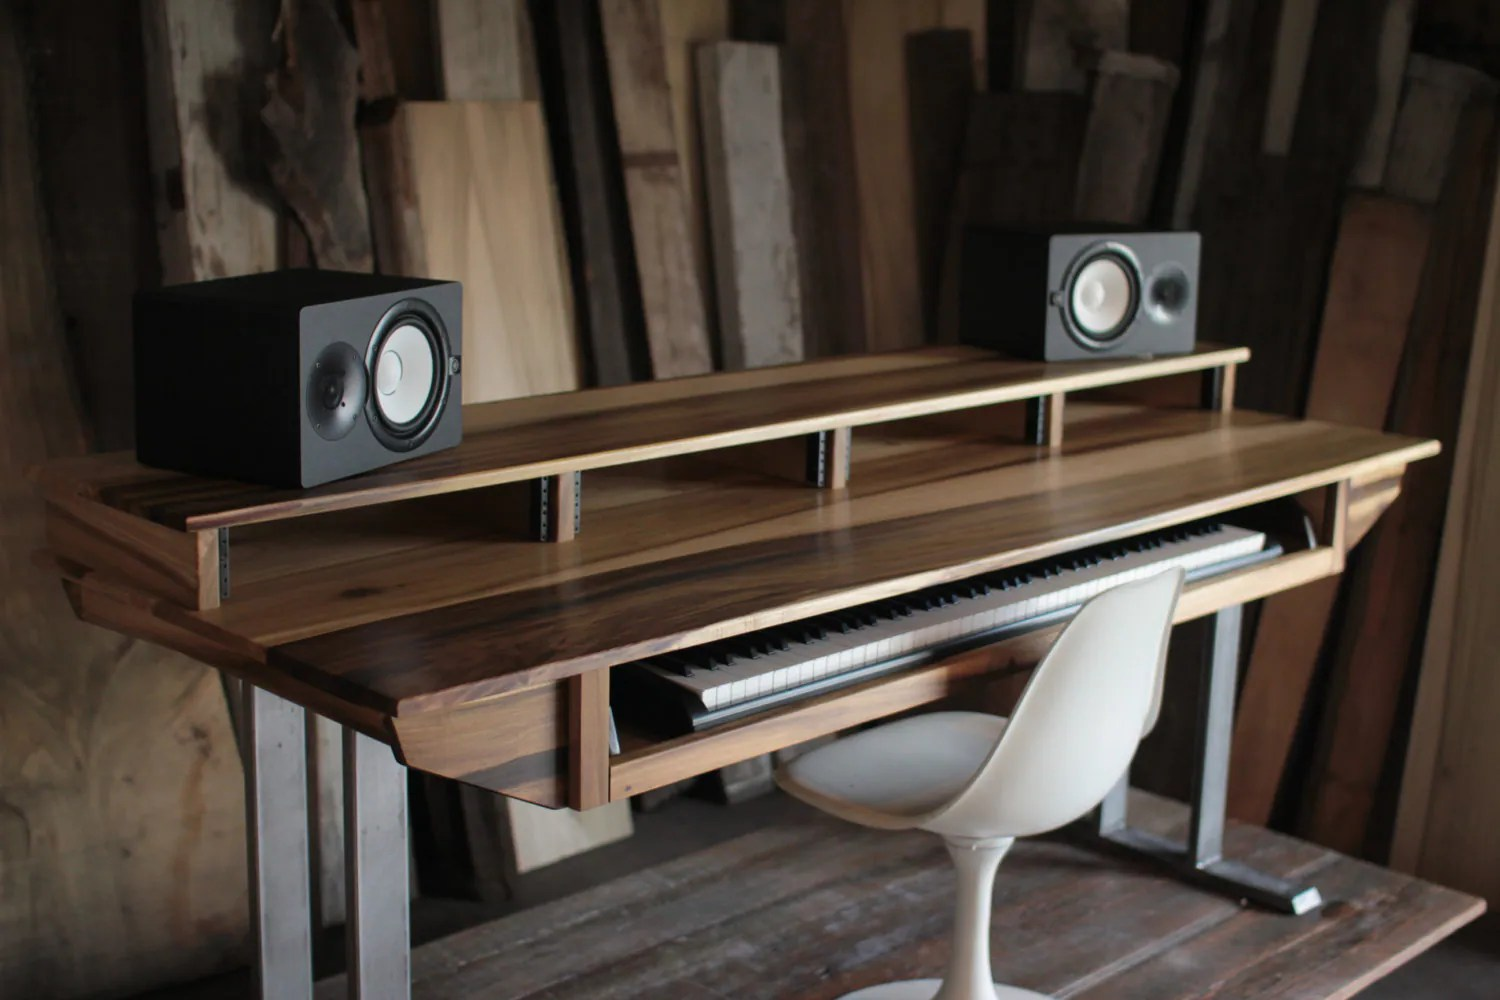 Recording Studio Chair Large Modern Wood Recording Studio Desk For Composer